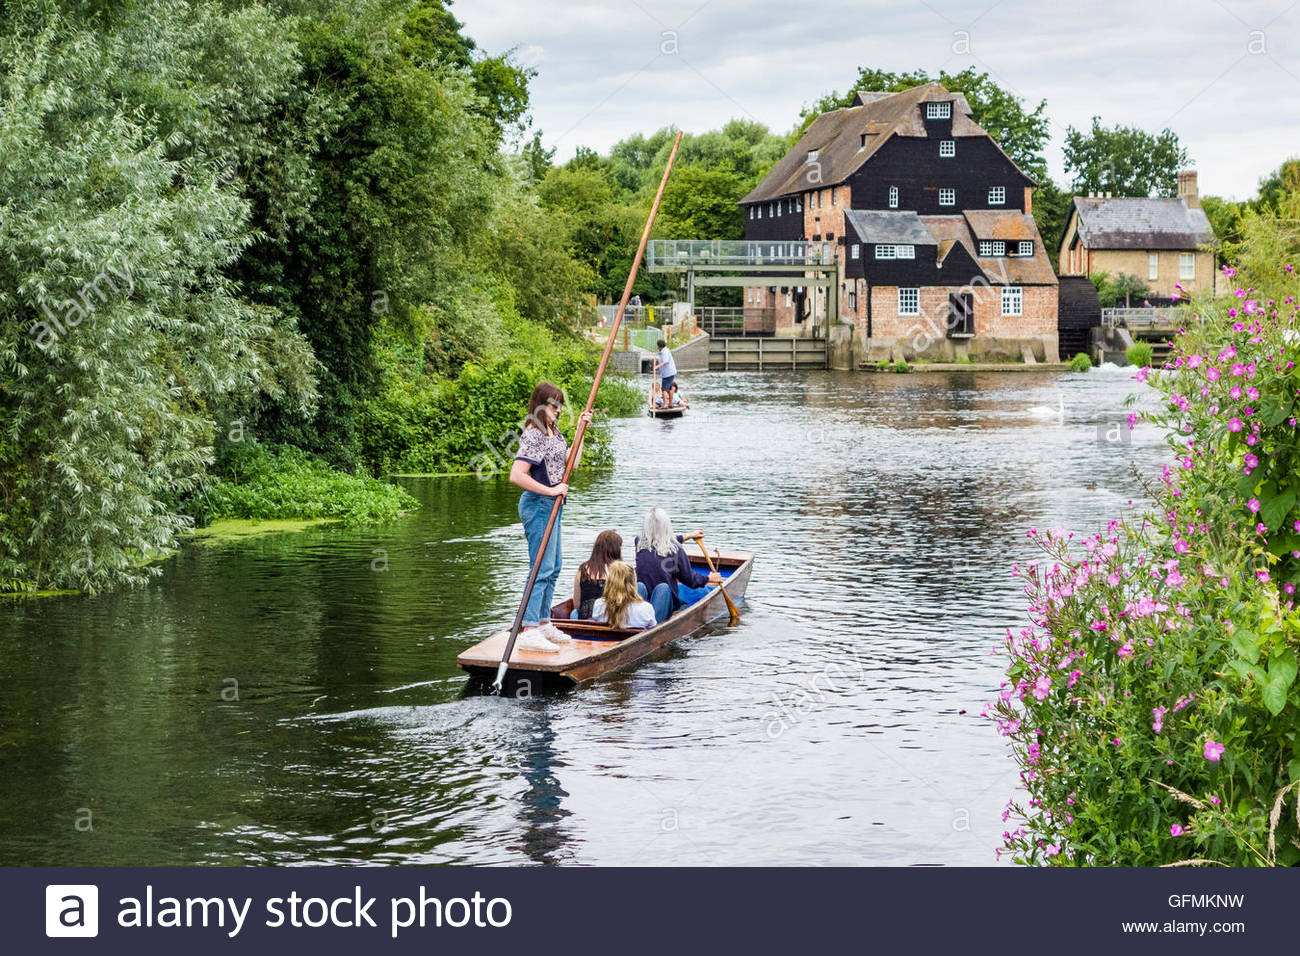 Houghton, Cambridgeshire, UK. 31st July, 2016. A group of girls punting on the River Great Ouse, in sight of Houghton - Stock Image